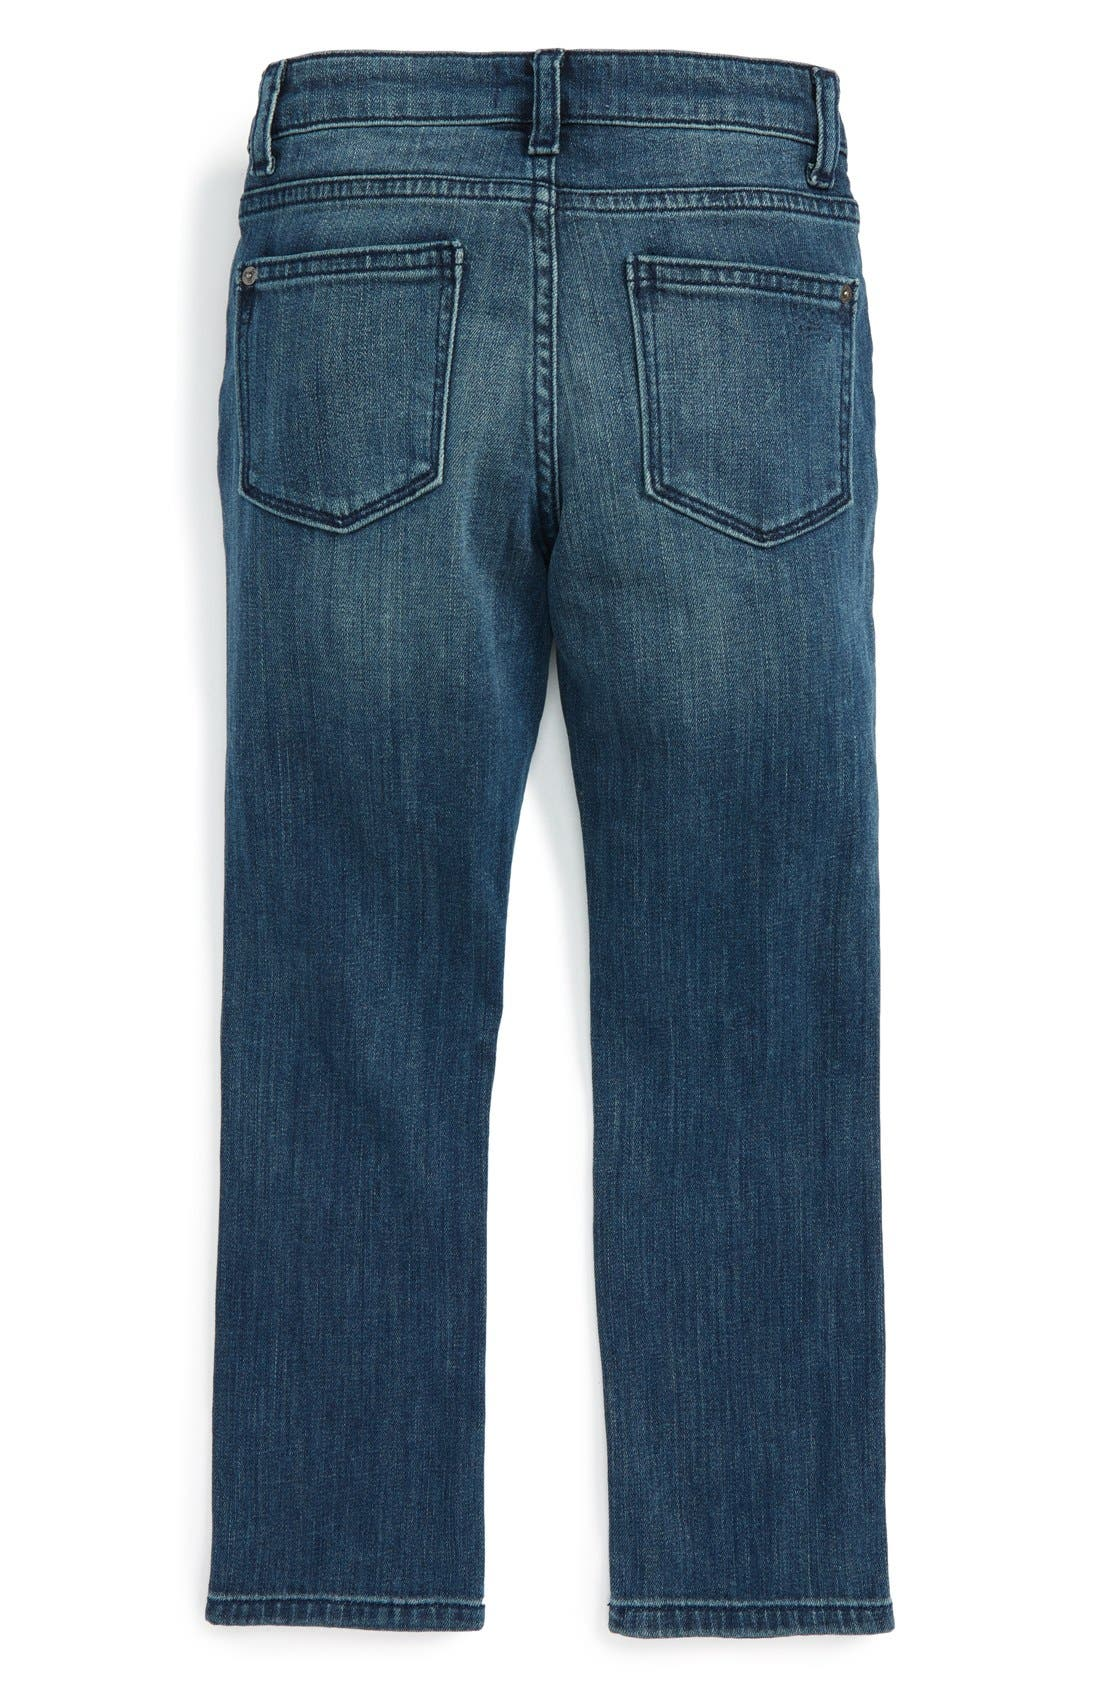 'Hawke' Skinny Jeans,                             Alternate thumbnail 2, color,                             SCABBARD